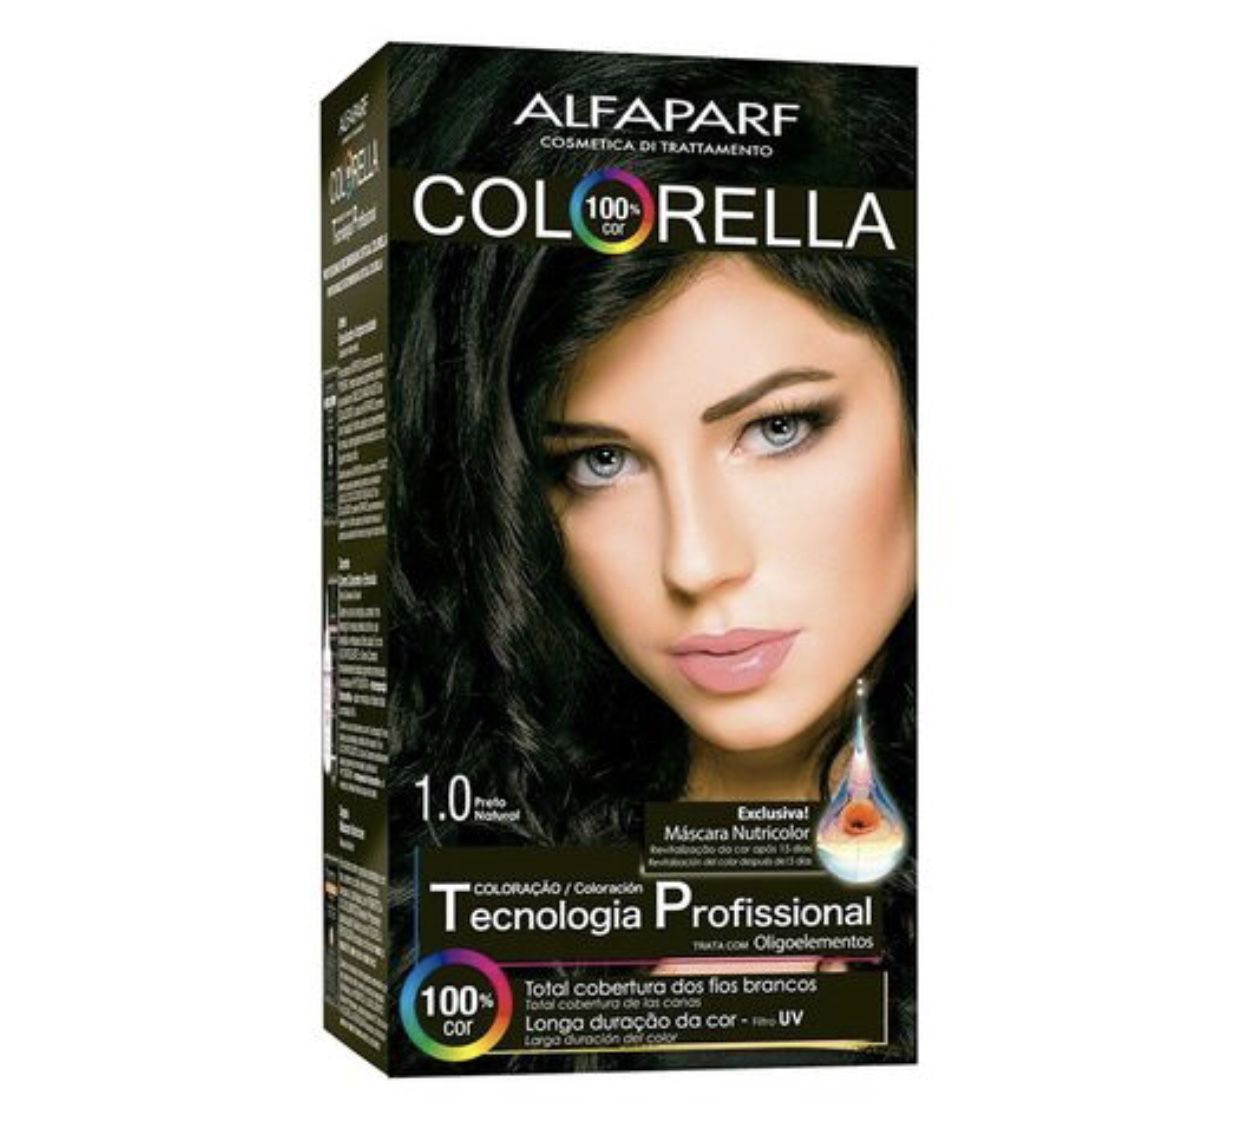 Tintura Alfaparf Colorella Preto Natural 1.0